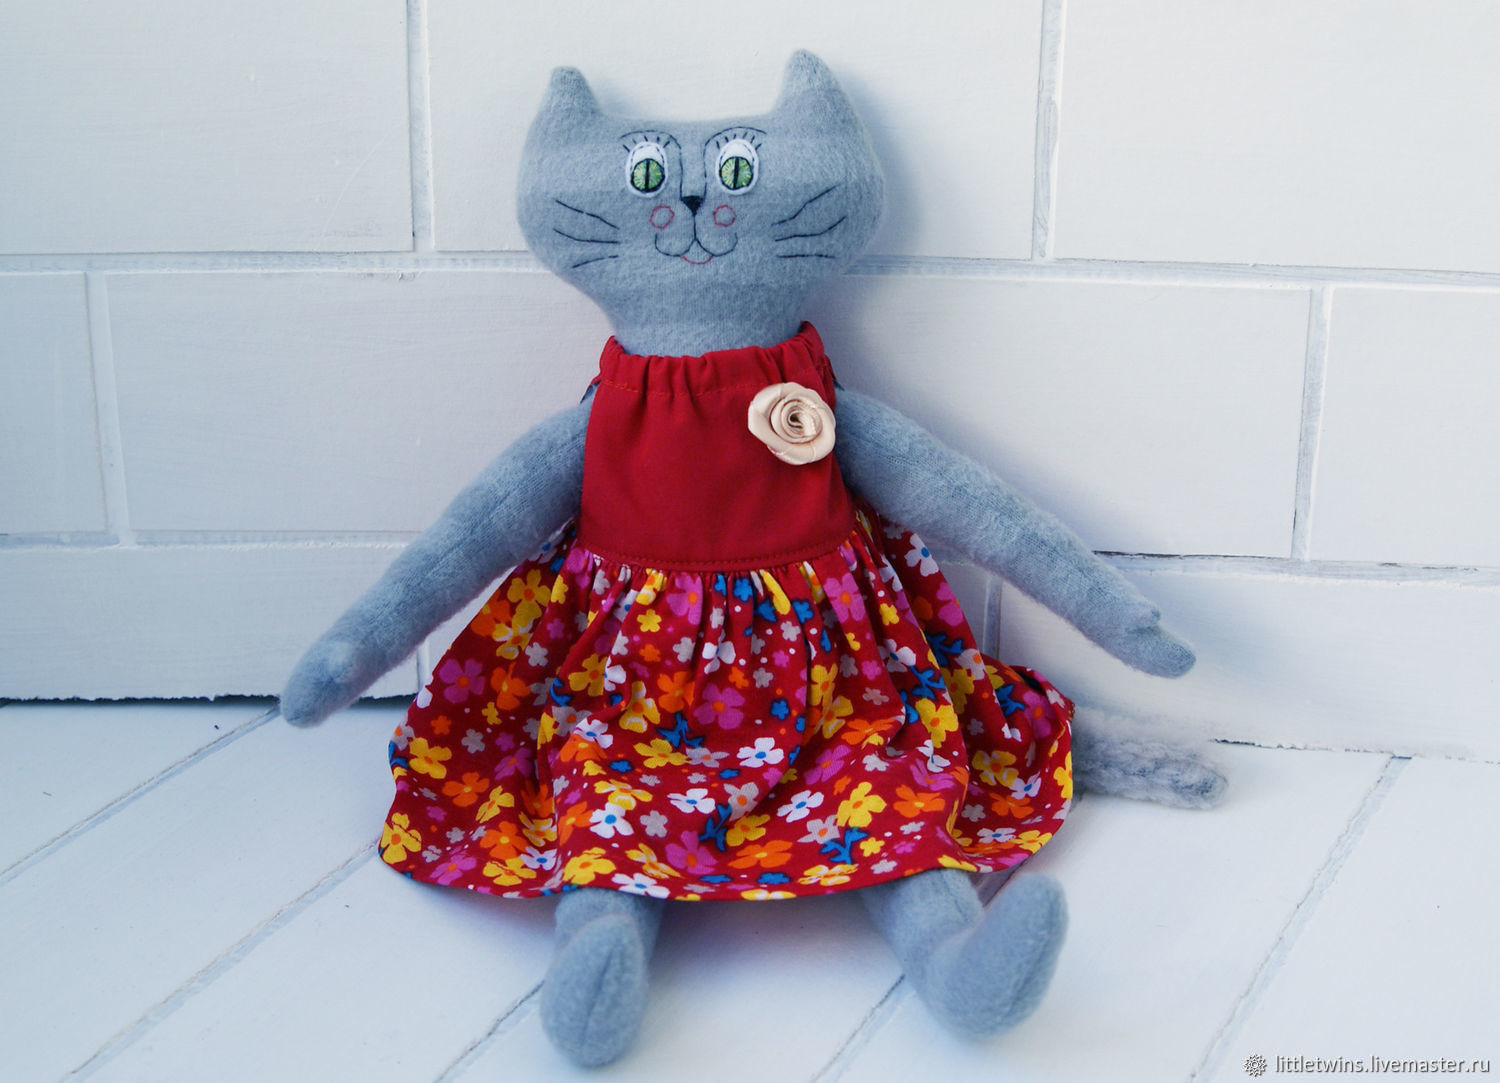 c5ef01e01de28 Clothes for Girls handmade. Baby dress cat toy. Little Twins by Yana  Vertoprakhova.